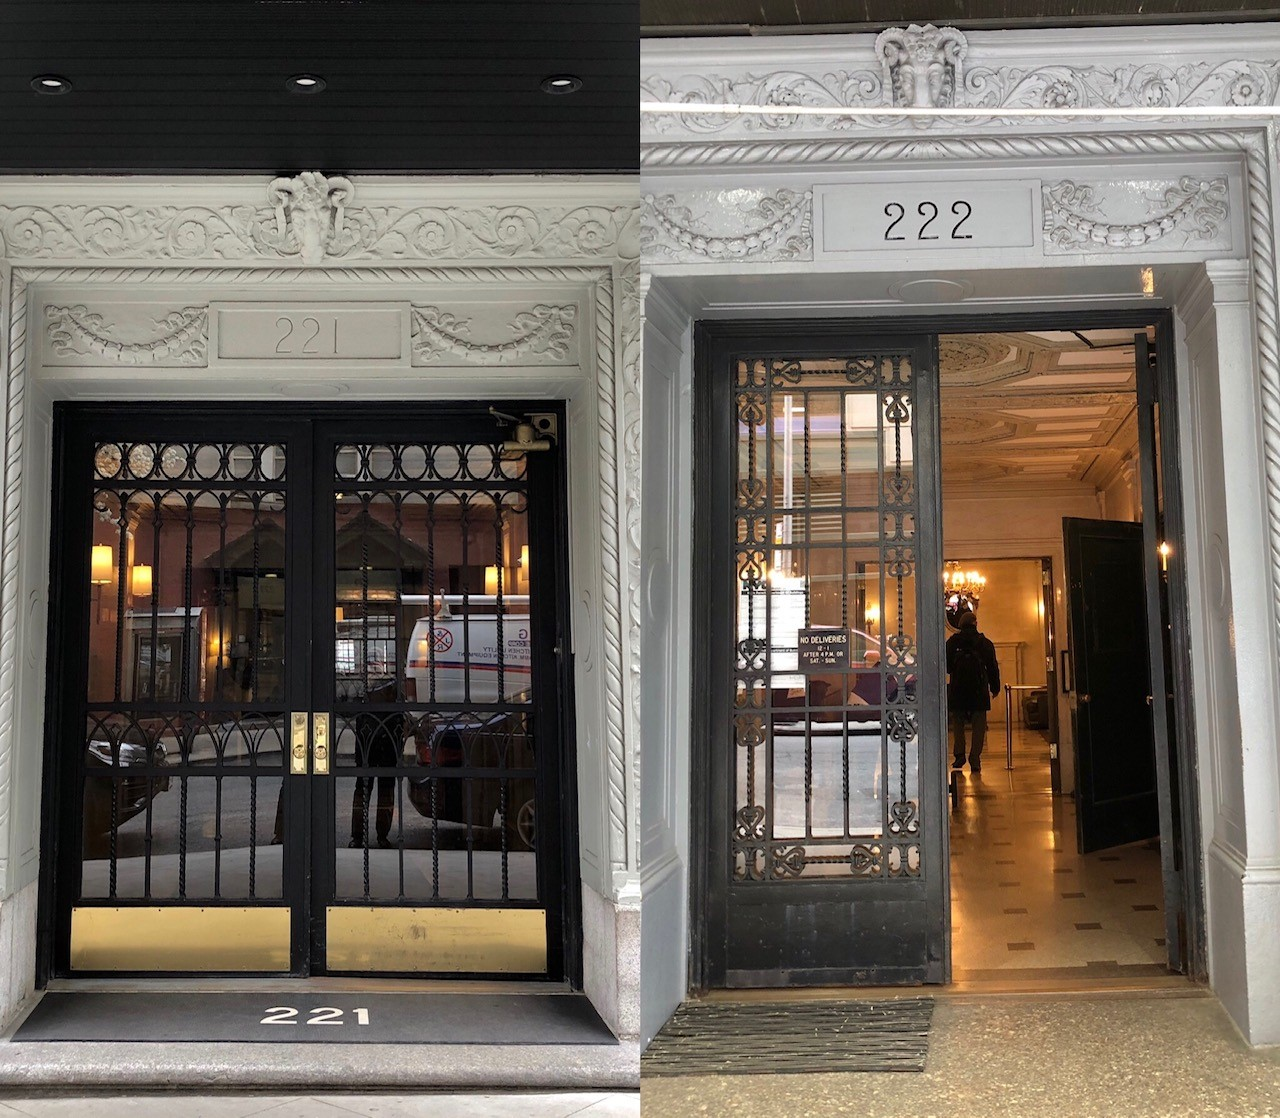 Similarities of the Front Entrances - 221 W. 82nd is a Condop and 222 W 83rd is a Rental Building